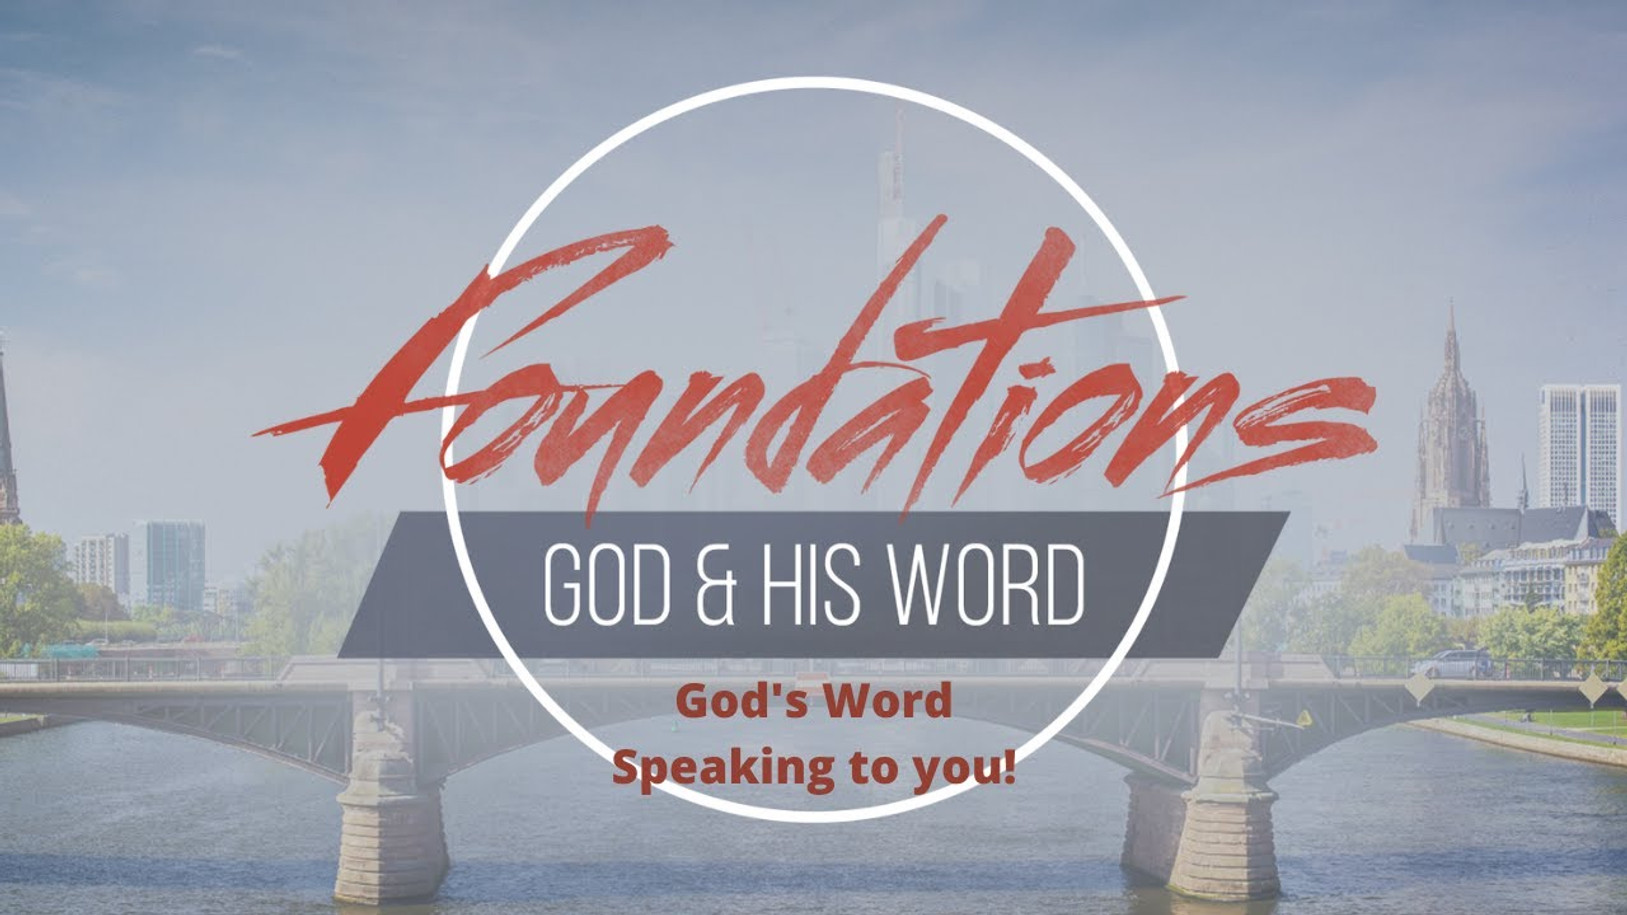 Foundations: God's Word is speaking to you!